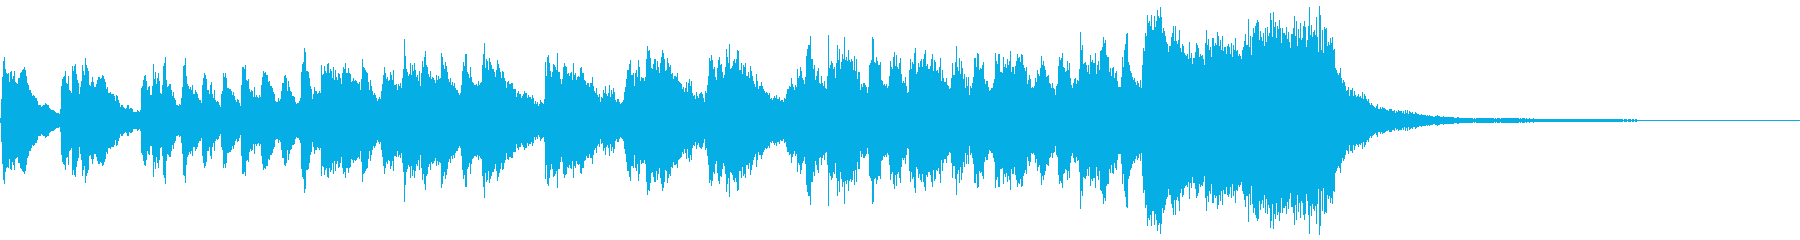 William Tell Overture (excerpt)'s reproduced waveform